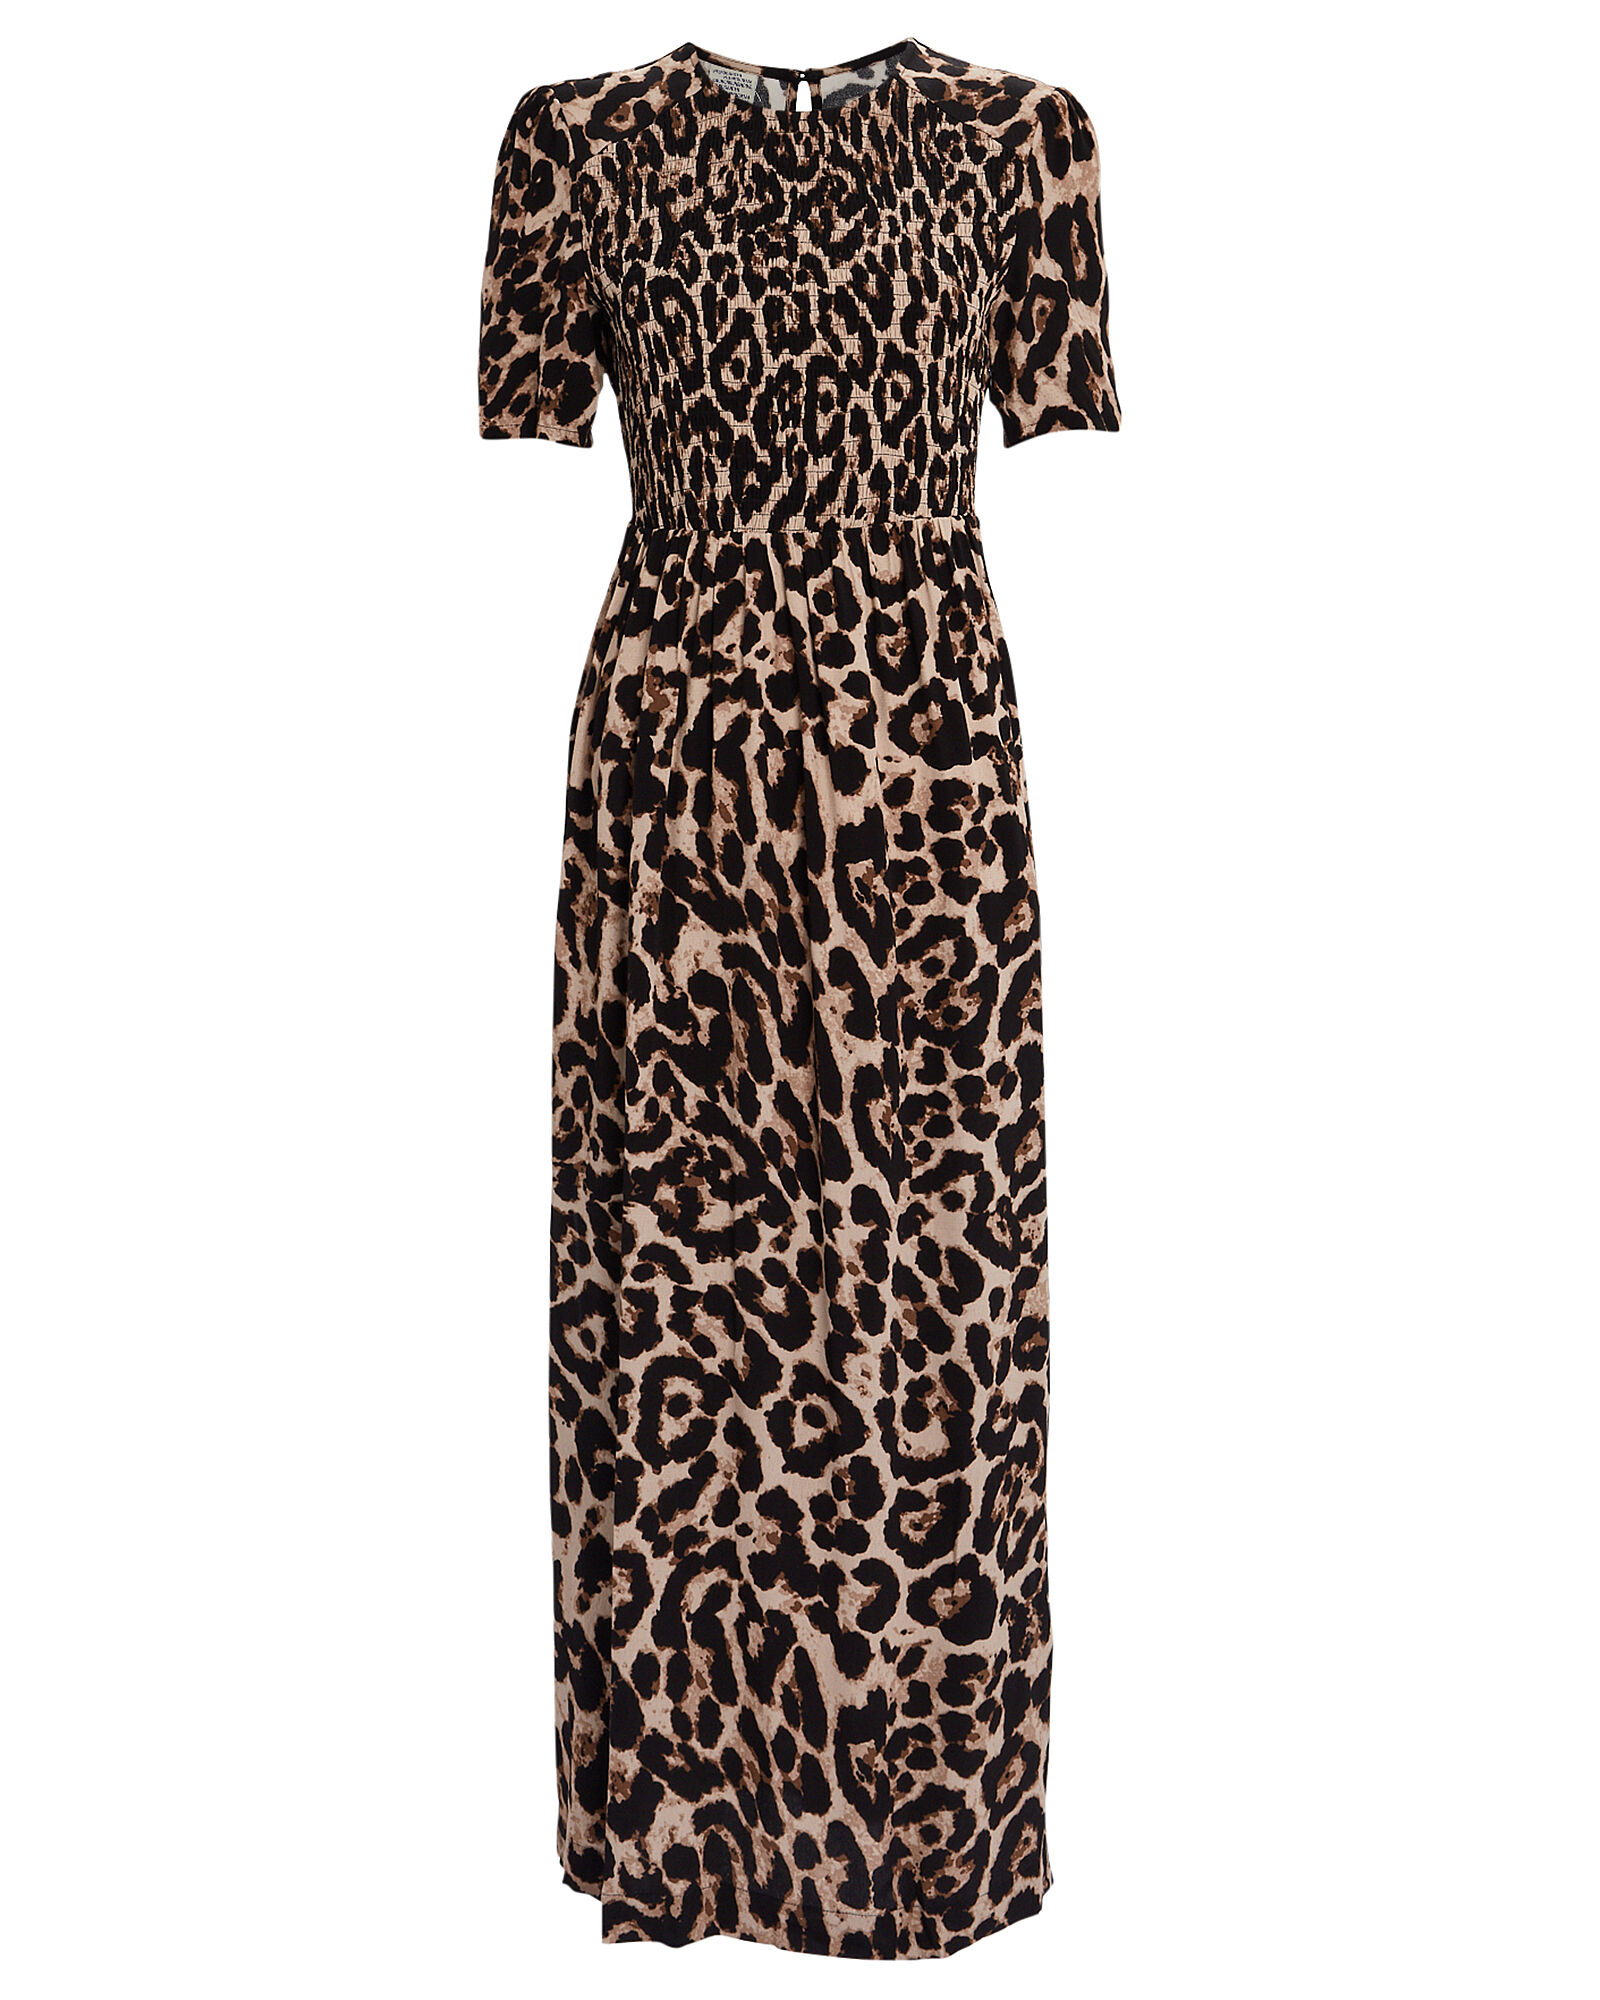 Adamaris Smocked Leopard Dress, MULTI, hi-res